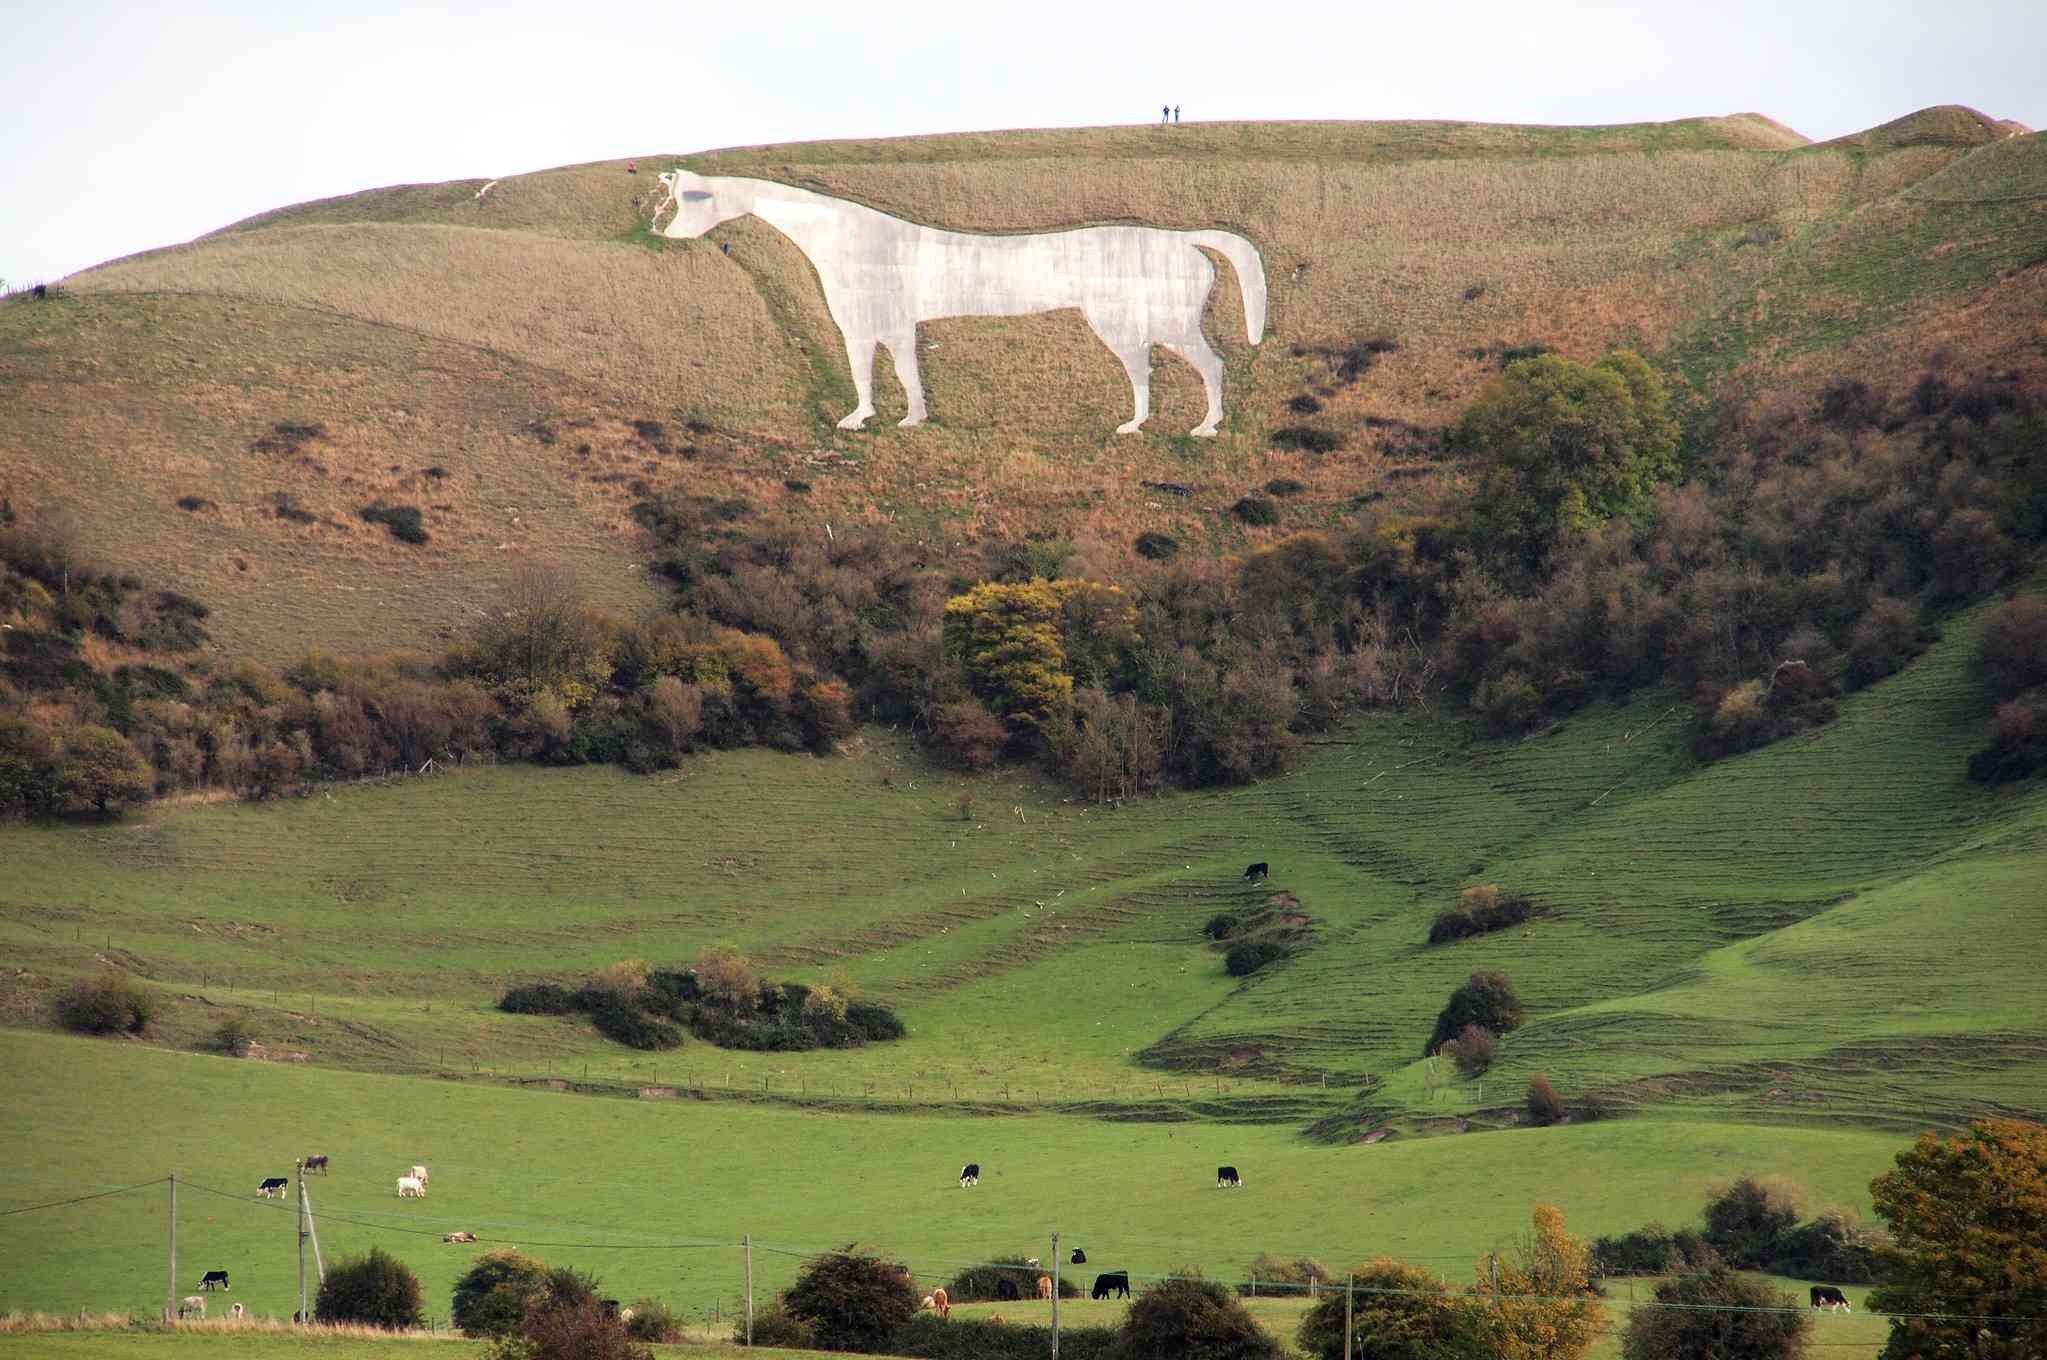 Aerial view of Westbury (or Bratton) White Horse on a hill where the grass has turned brown with green rolling hills and trees in the foreground beneath a cloudy sky